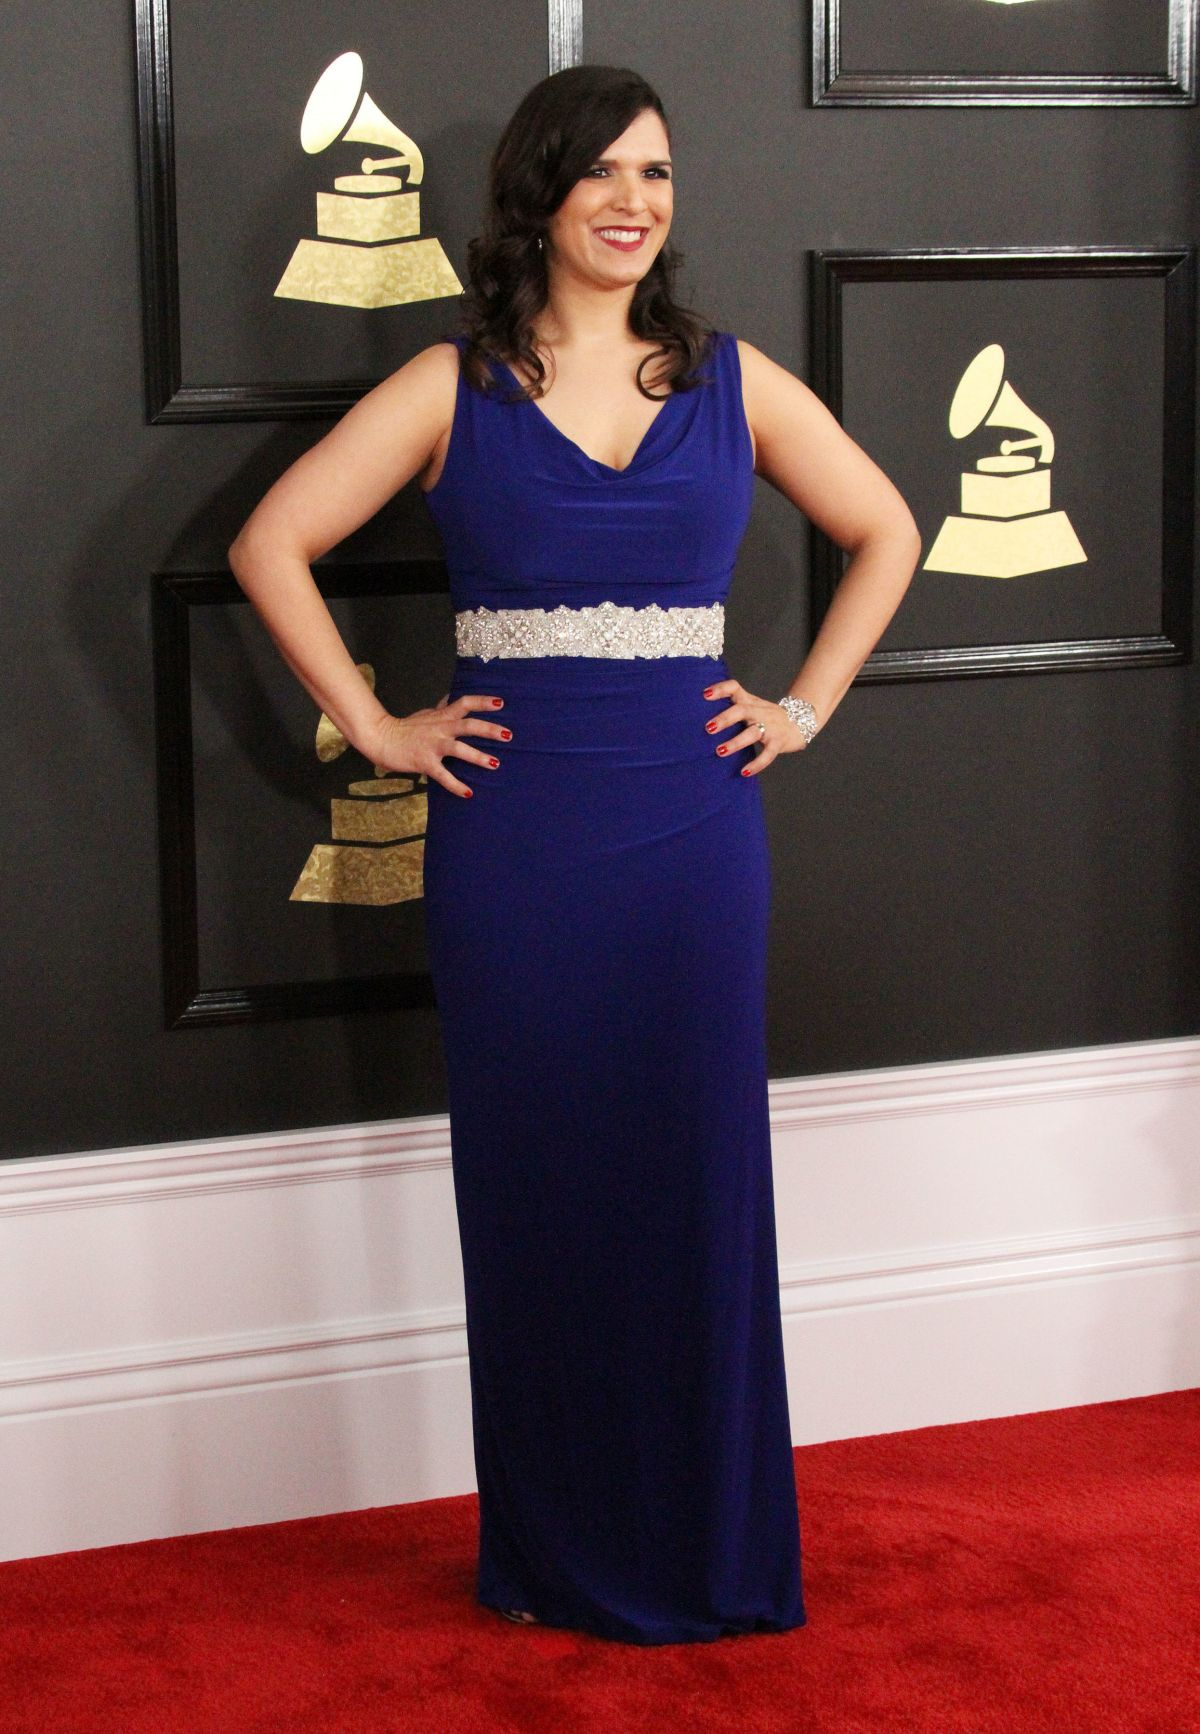 JEANNE MONTALVO at 59th Annual Grammy Awards in Los Angeles 02/12/2017